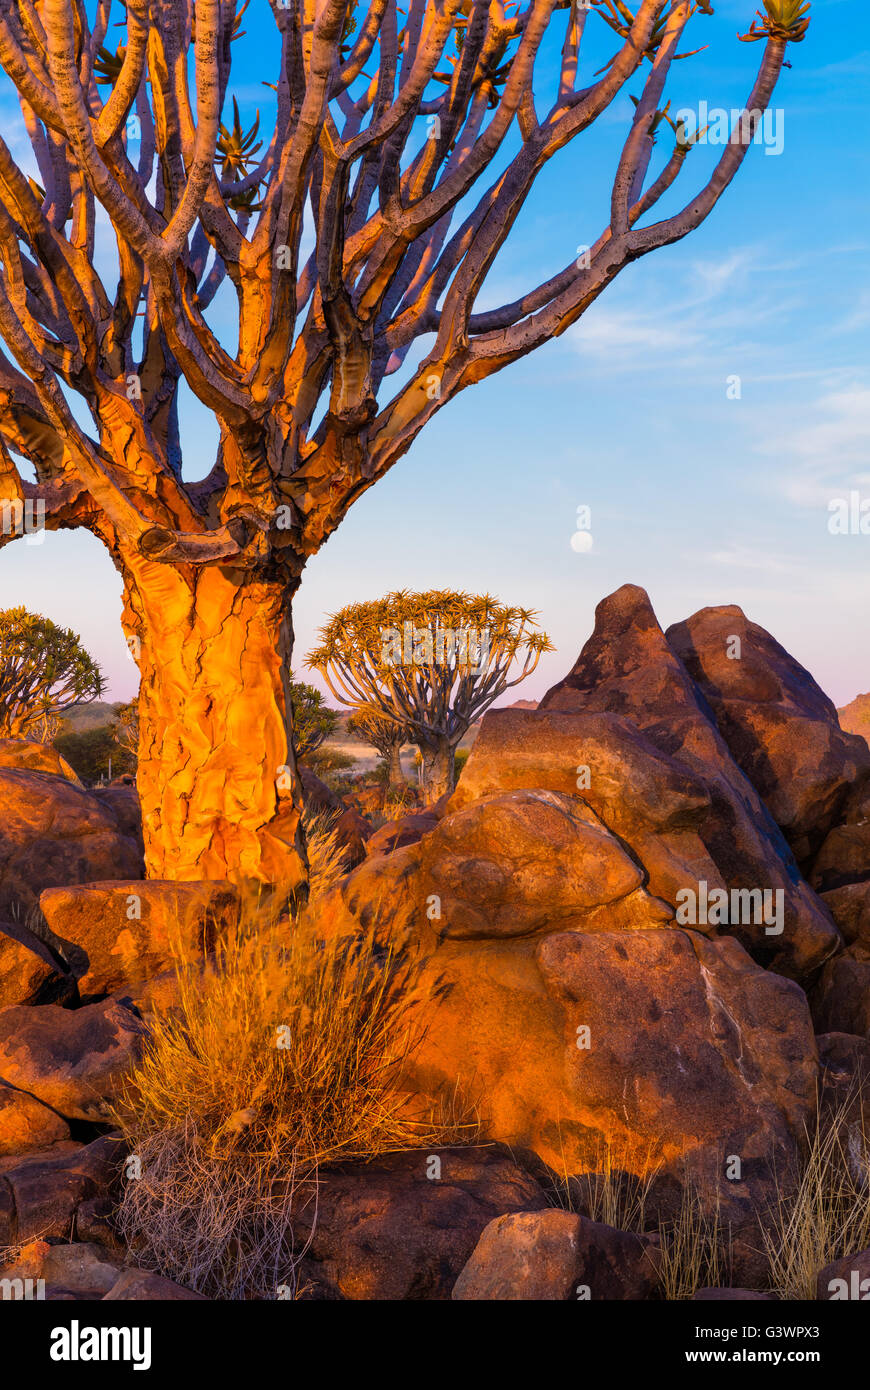 Woud: The Quiver Tree Forest (Kokerboom Woud In Afrikaans) Is A